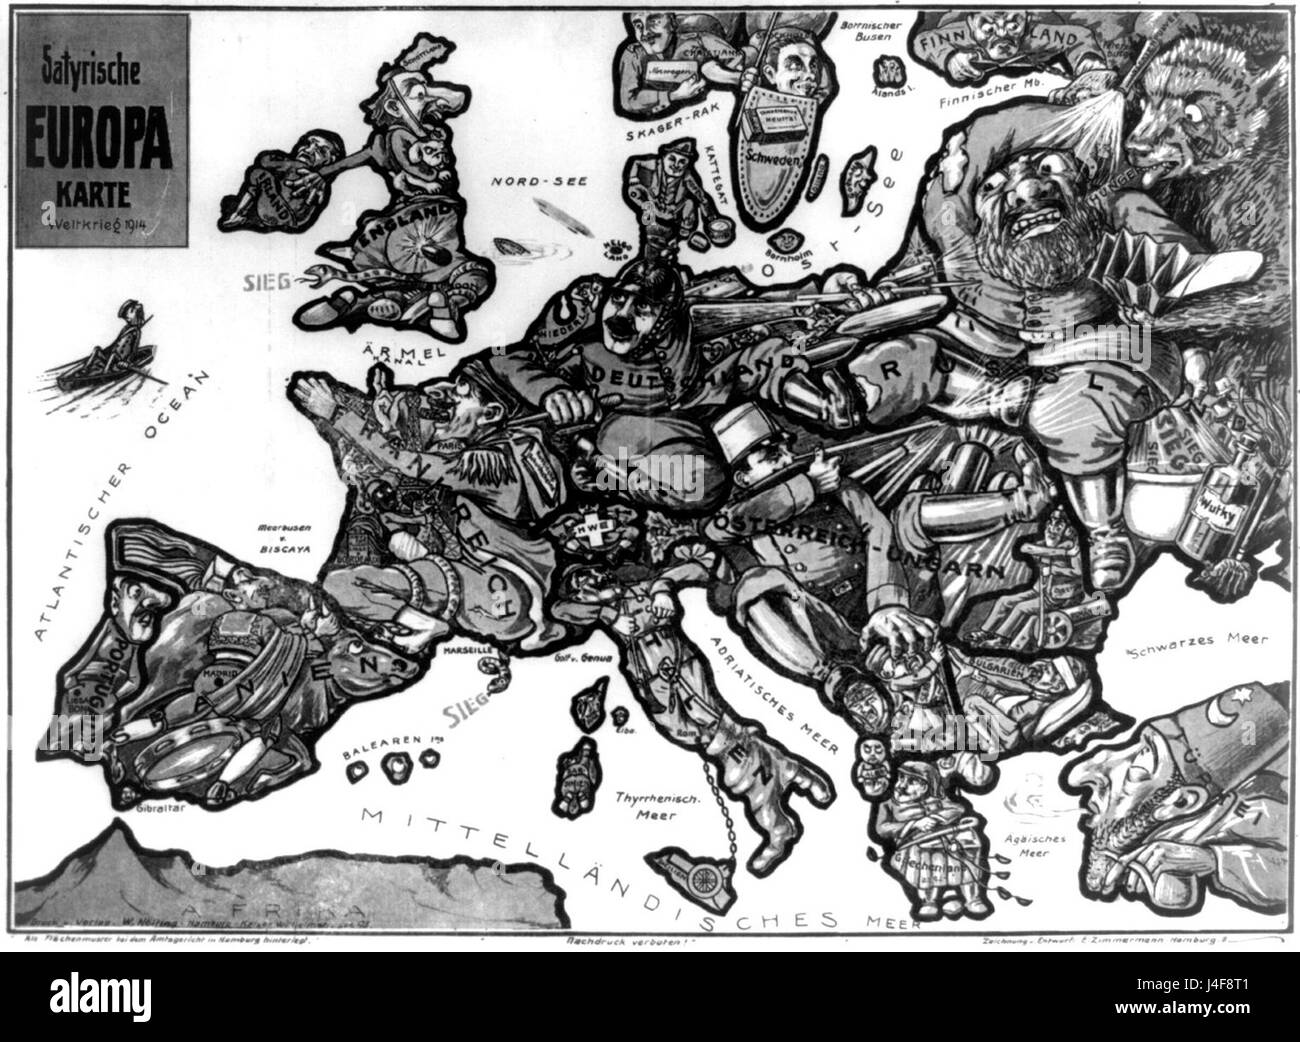 Map Europe 1914 Black and White Stock Photos & Images - Alamy